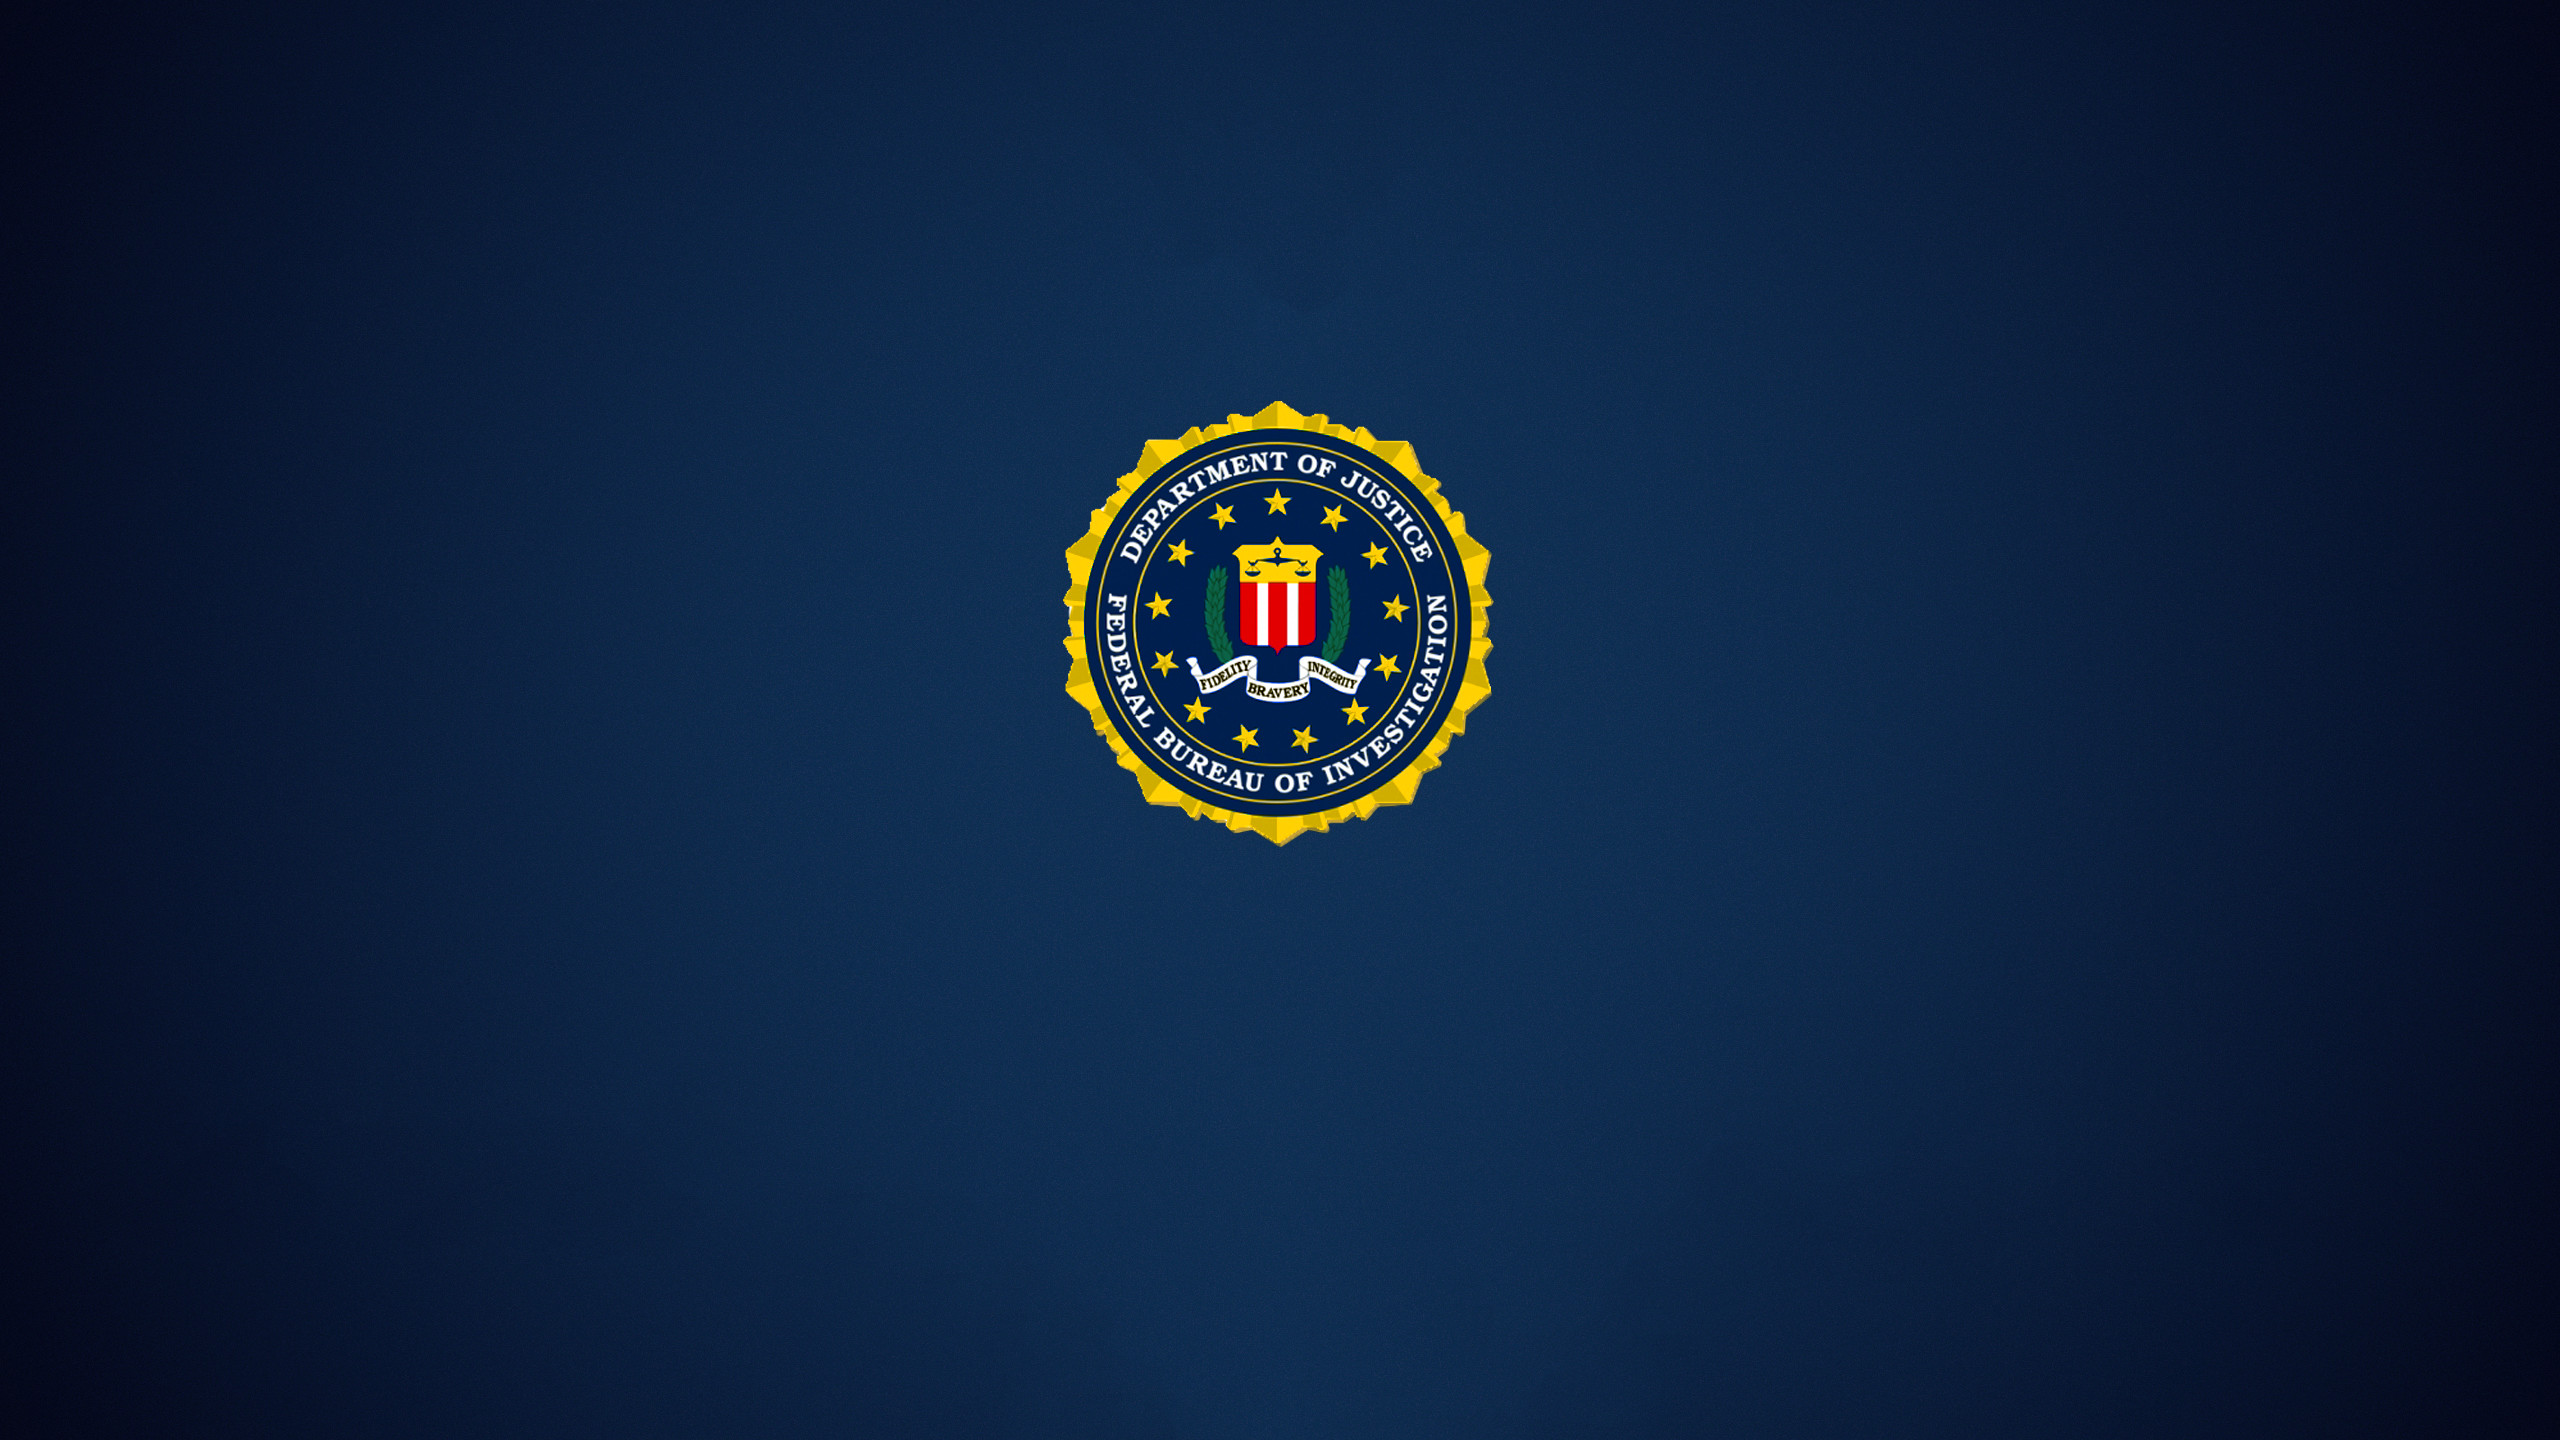 Fbi Wallpapers Hd 65 Images HD Wallpapers Download Free Images Wallpaper [1000image.com]